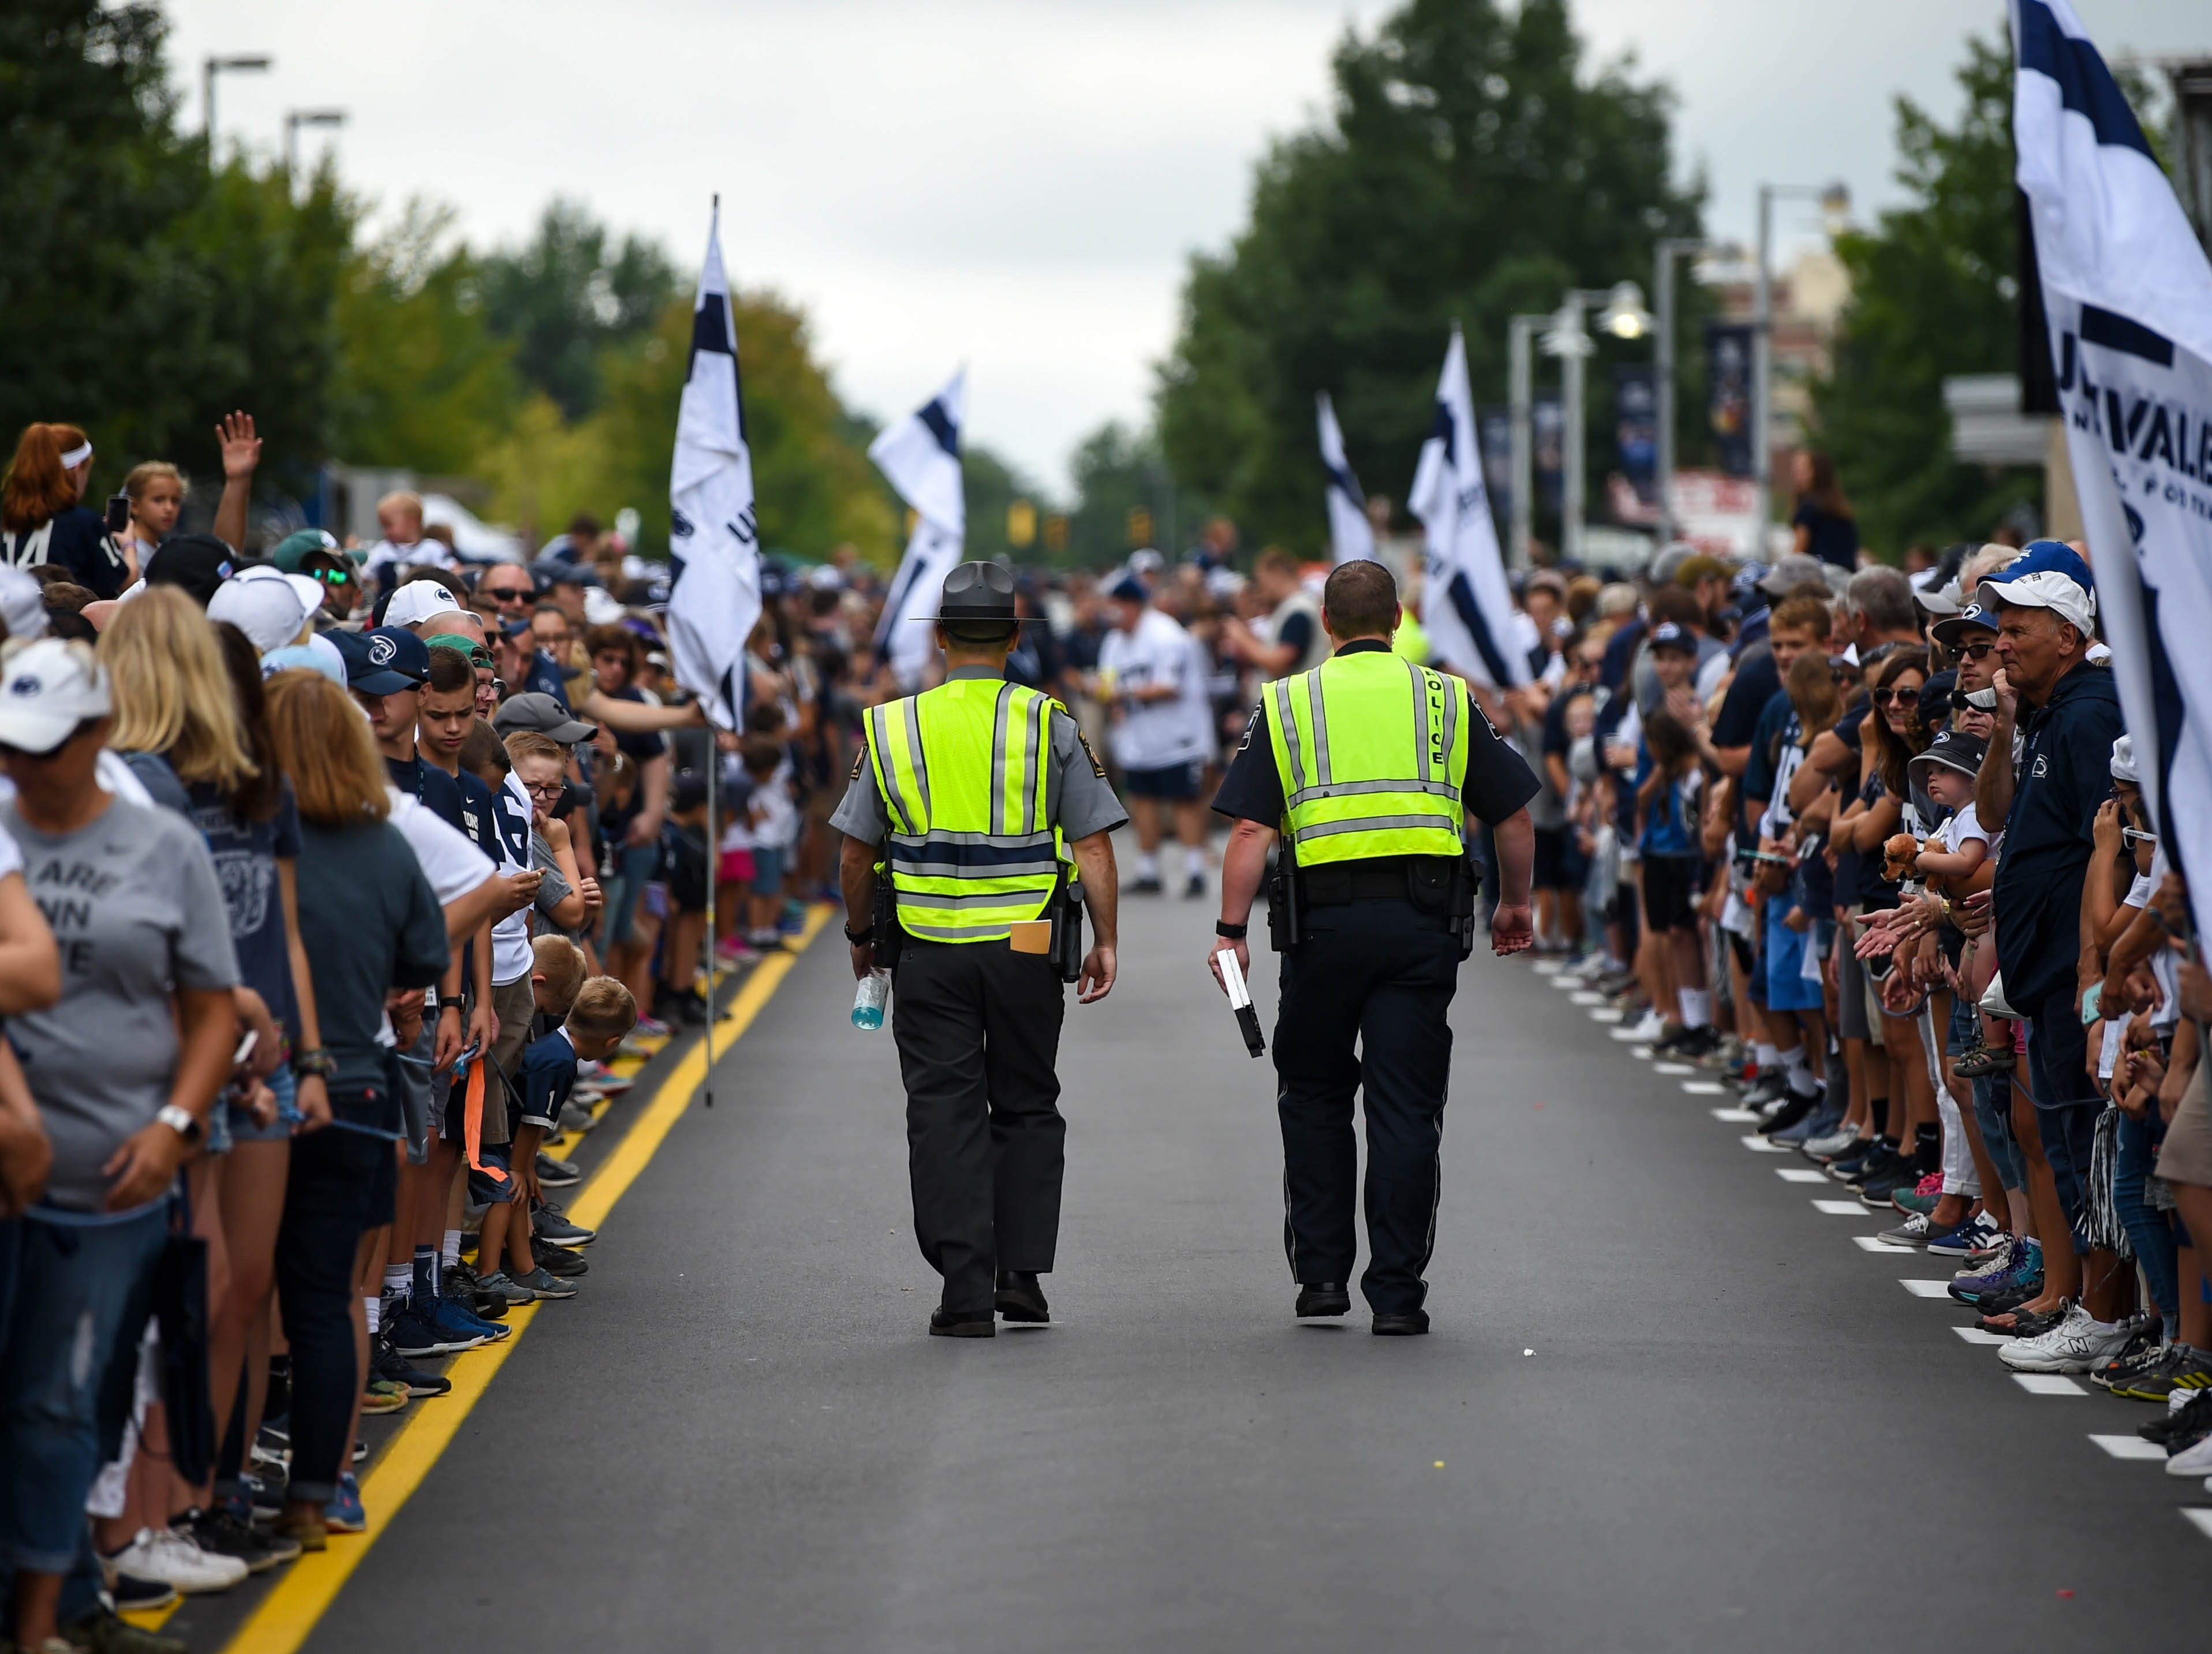 Penn State fans line both sides of the street eagerly awaiting Franklin and the rest of the team's arrival.